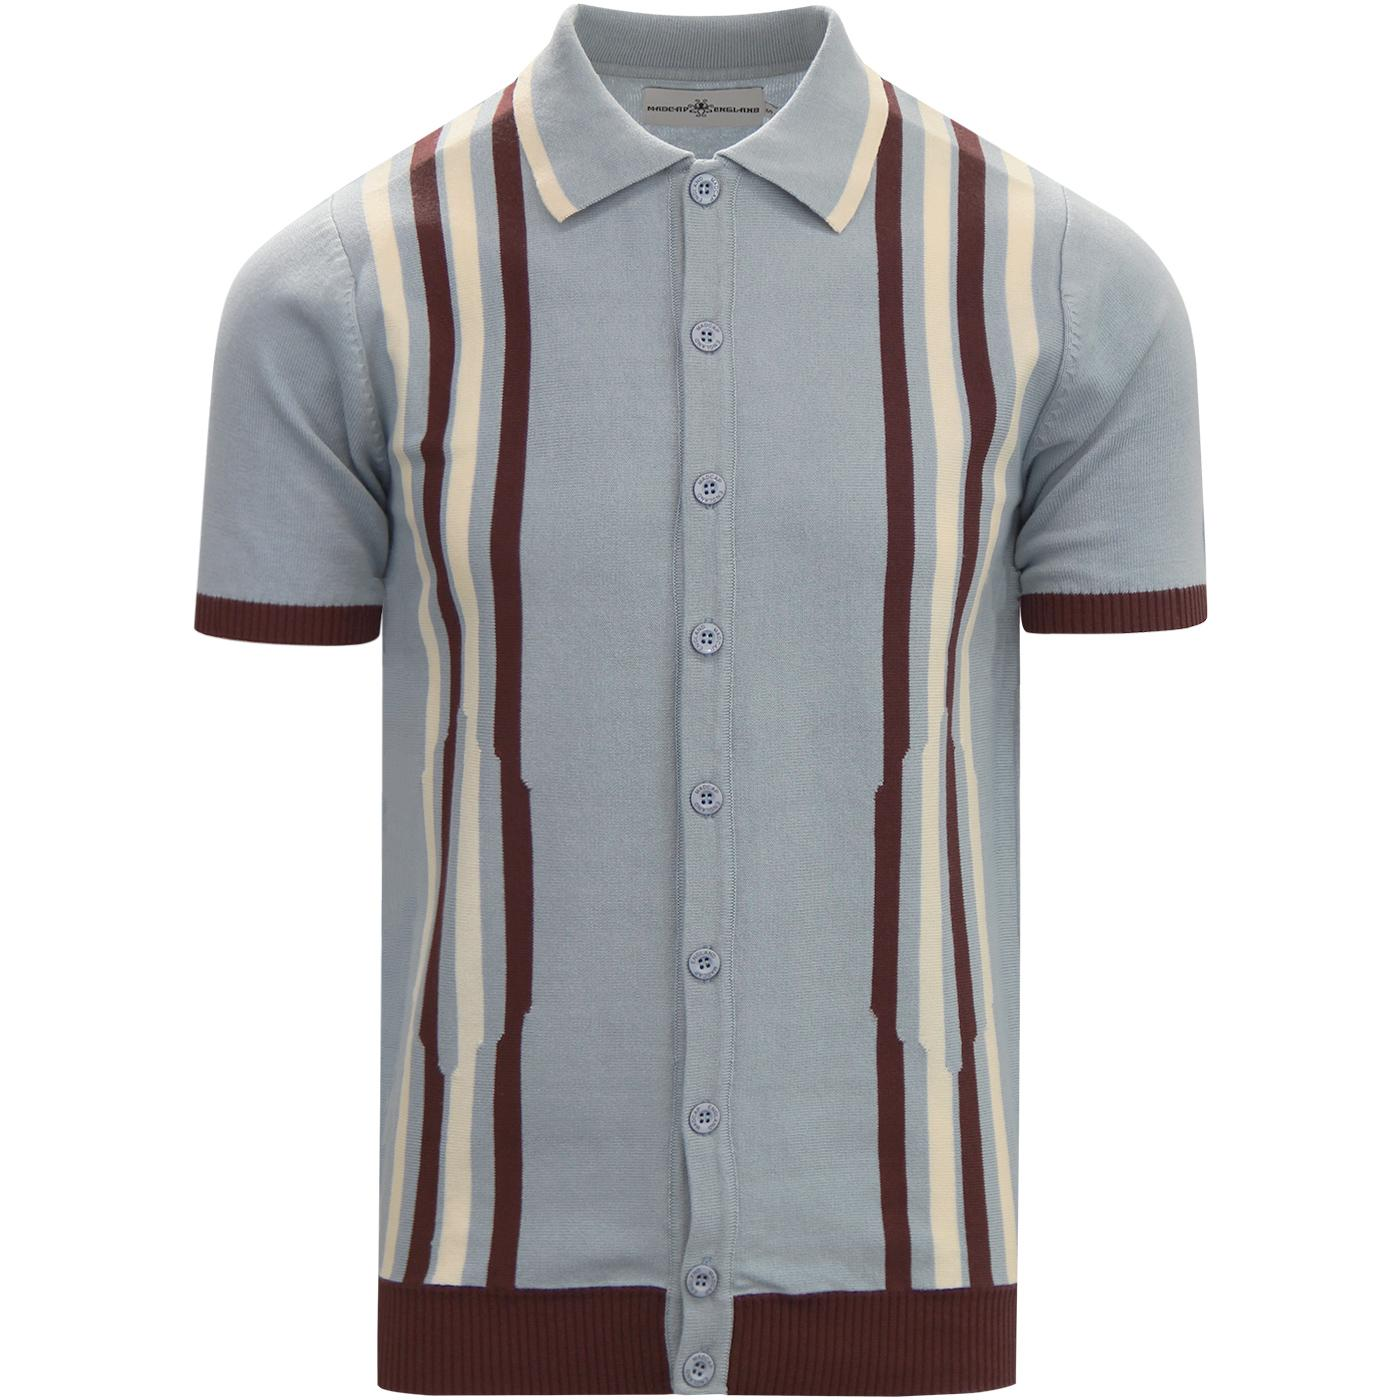 madcap england mens retro mod vertical stripes button through polo tshirt blue fog